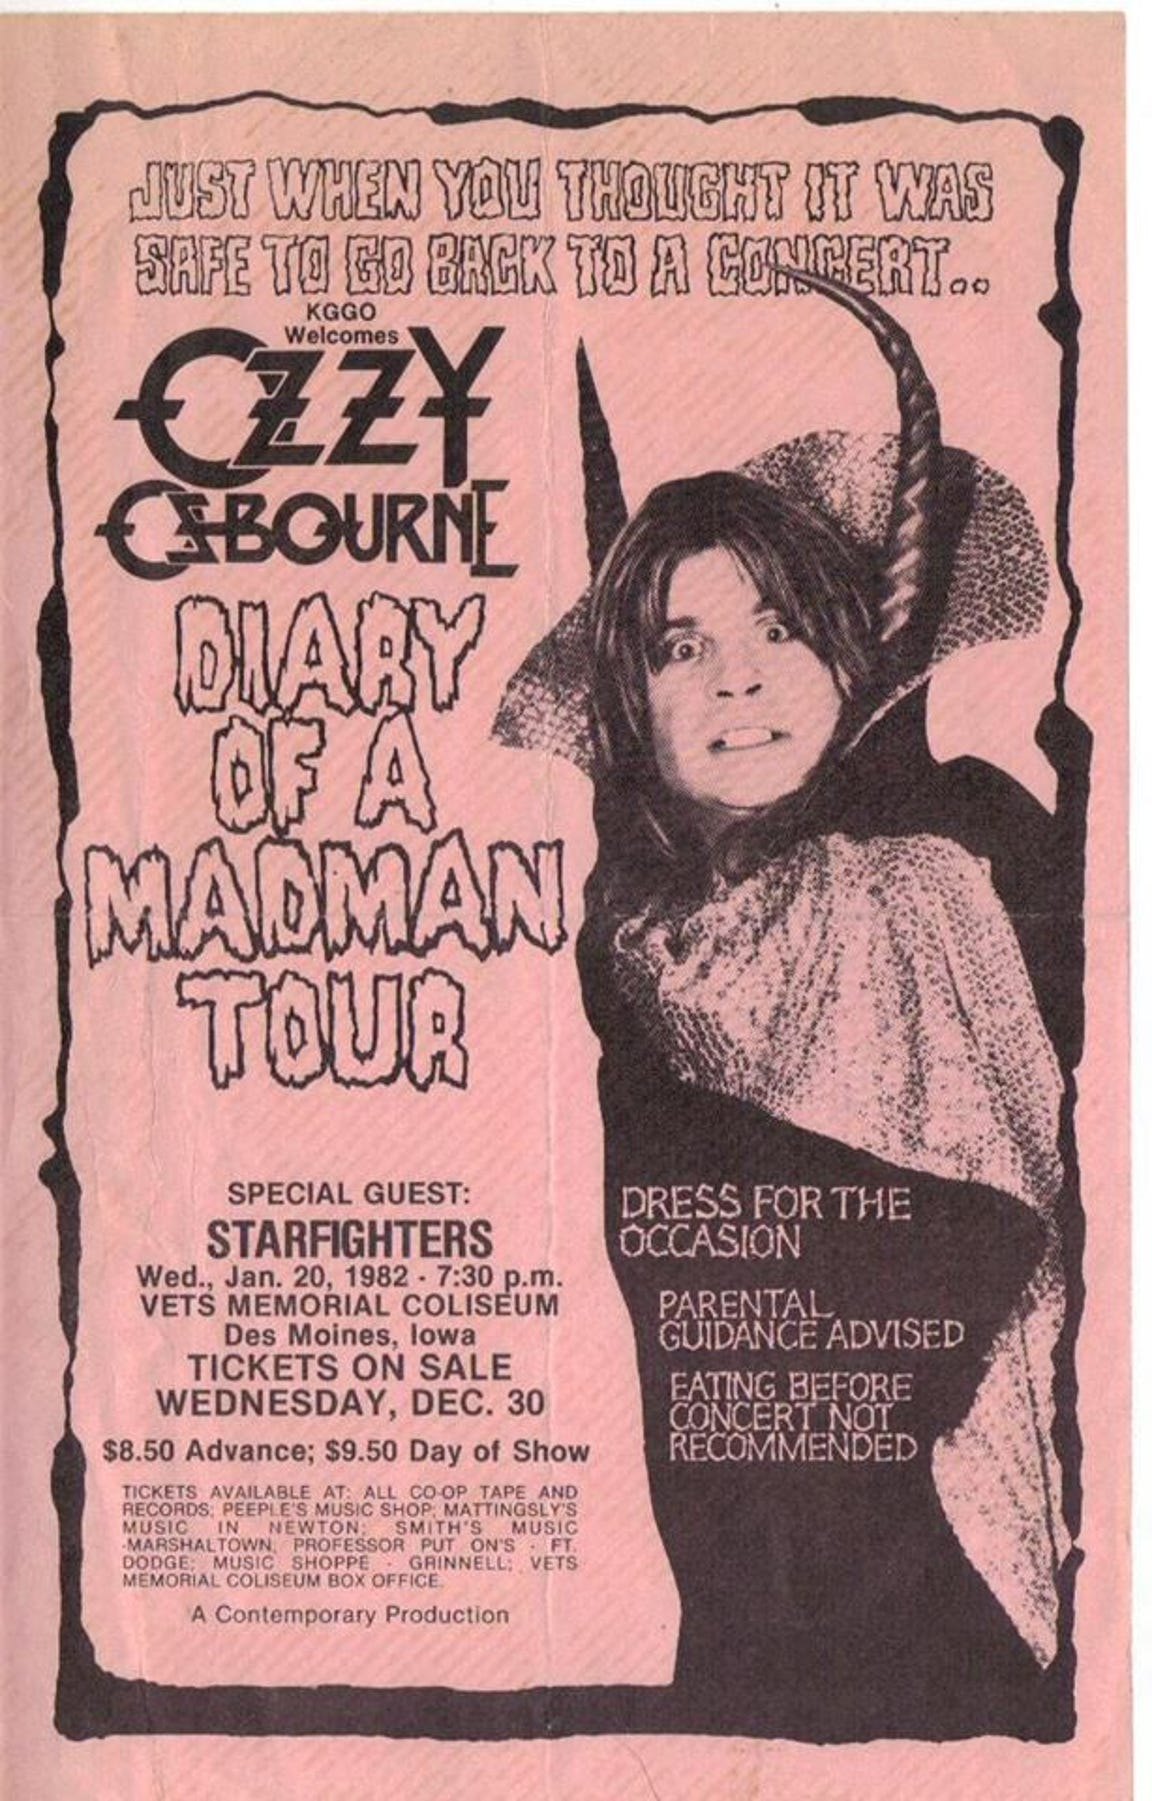 A handbill used to promote the Jan. 20, 1982, Ozzy Osbourne show in Des Moines, Iowa.